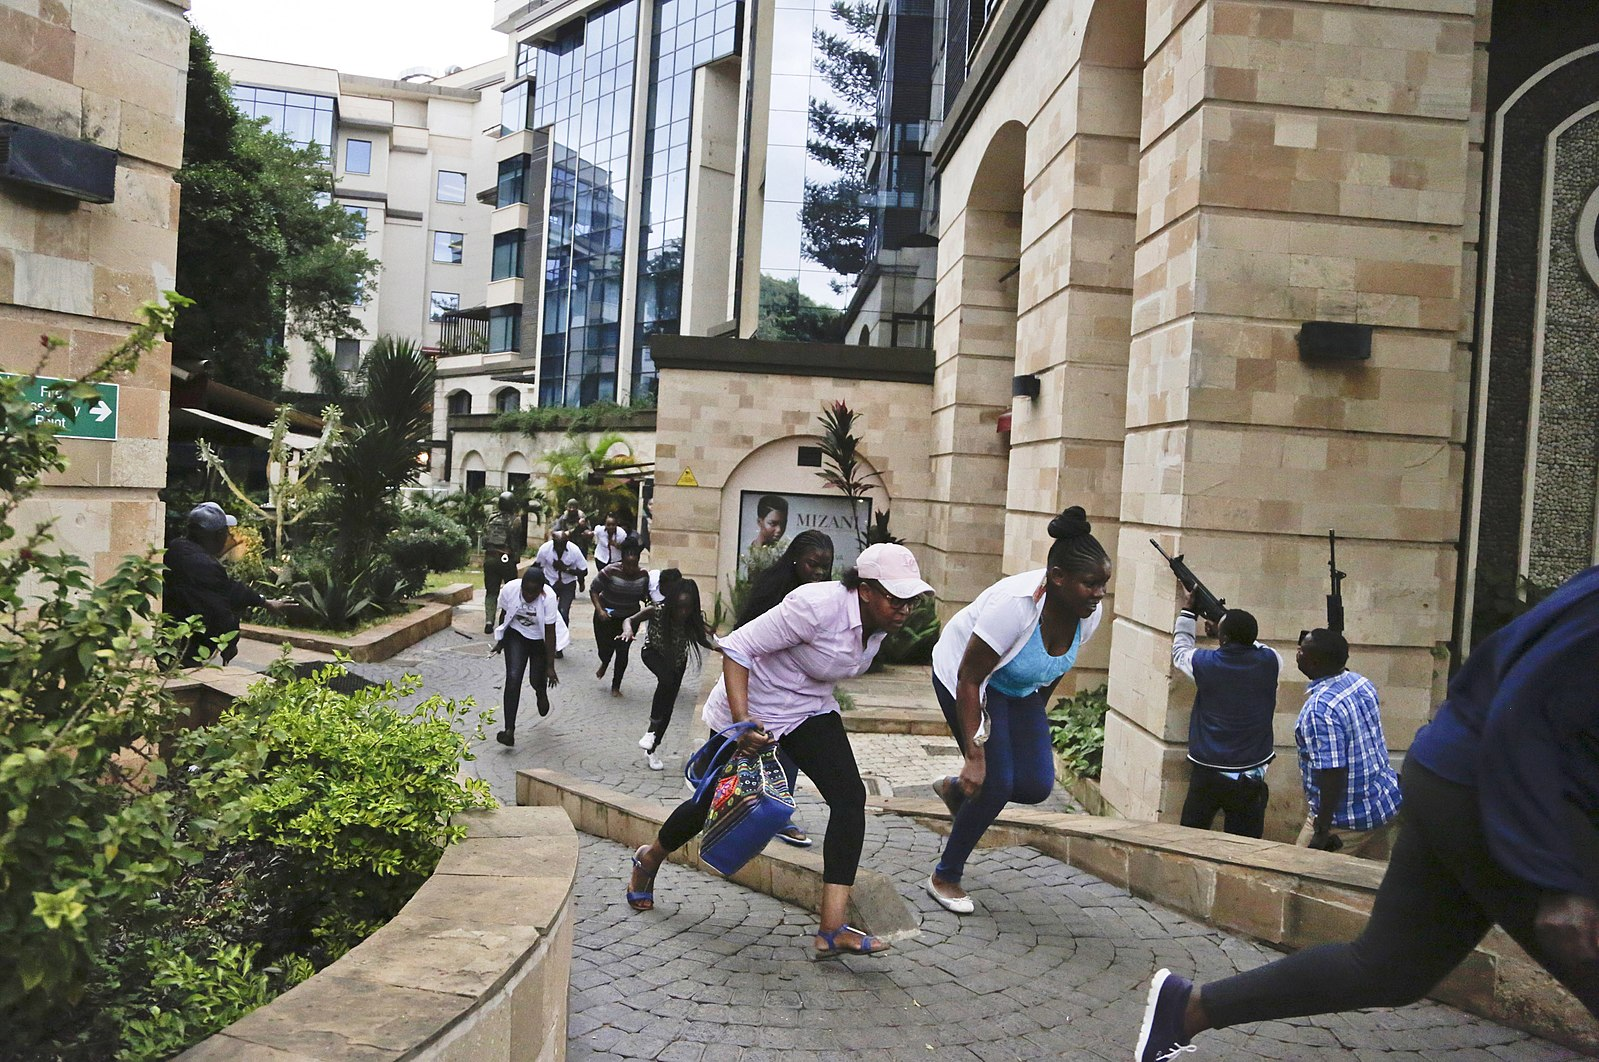 Guests flee a terrorist attack at the upscale Dusit hotel in Nairobi while plainclothes policemen enter the premises on Jan. 15, 2019. Photo by  Shadrack Kimutai .